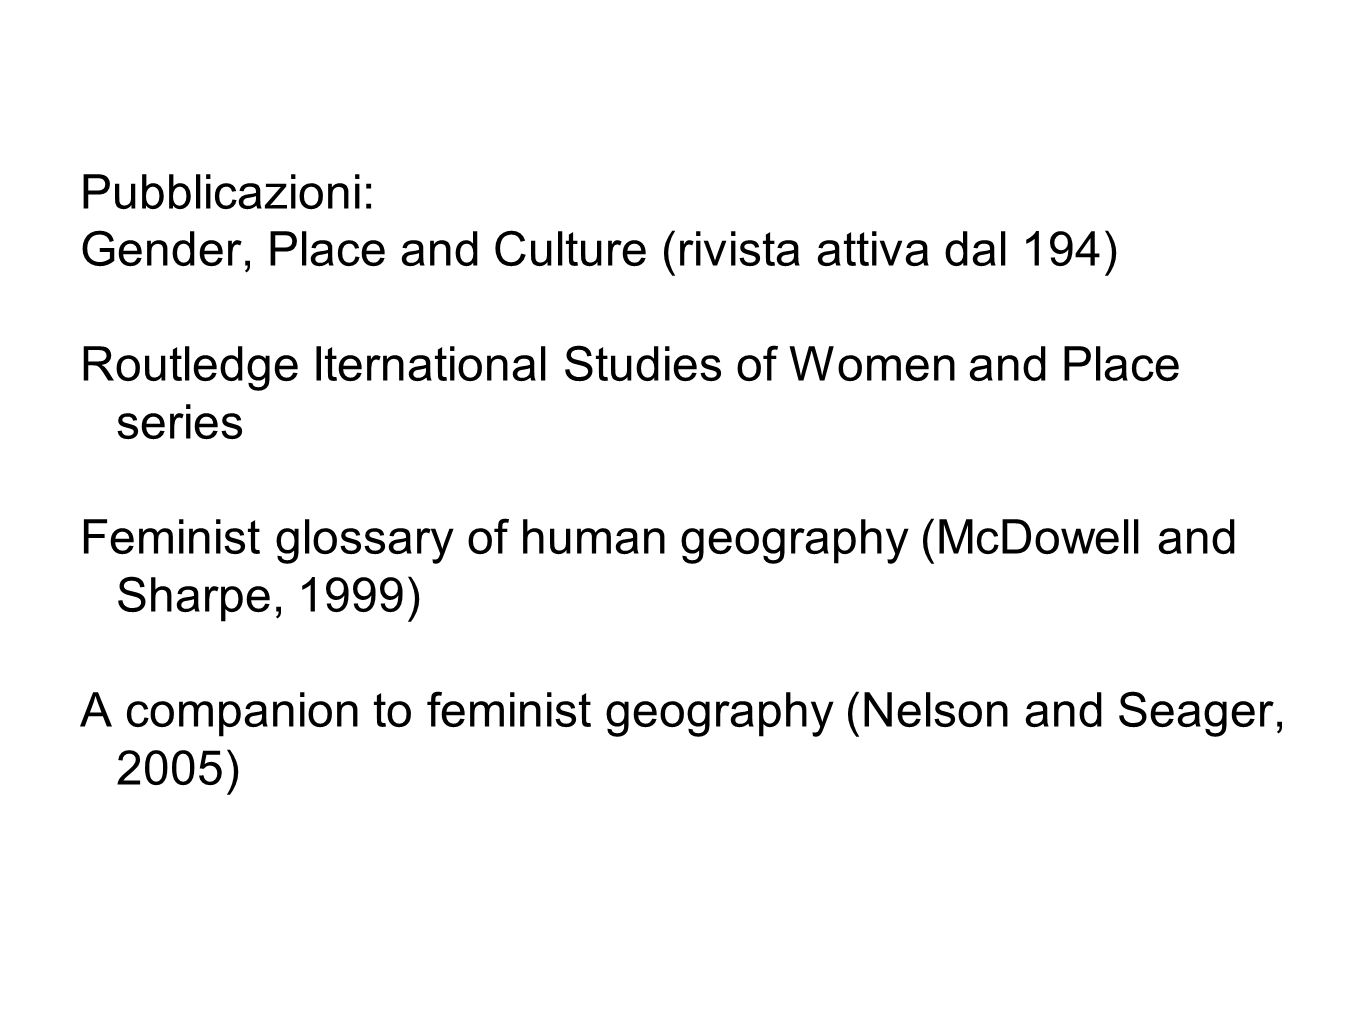 Pubblicazioni: Gender, Place and Culture (rivista attiva dal 194) Routledge Iternational Studies of Women and Place series Feminist glossary of human geography (McDowell and Sharpe, 1999) A companion to feminist geography (Nelson and Seager, 2005)